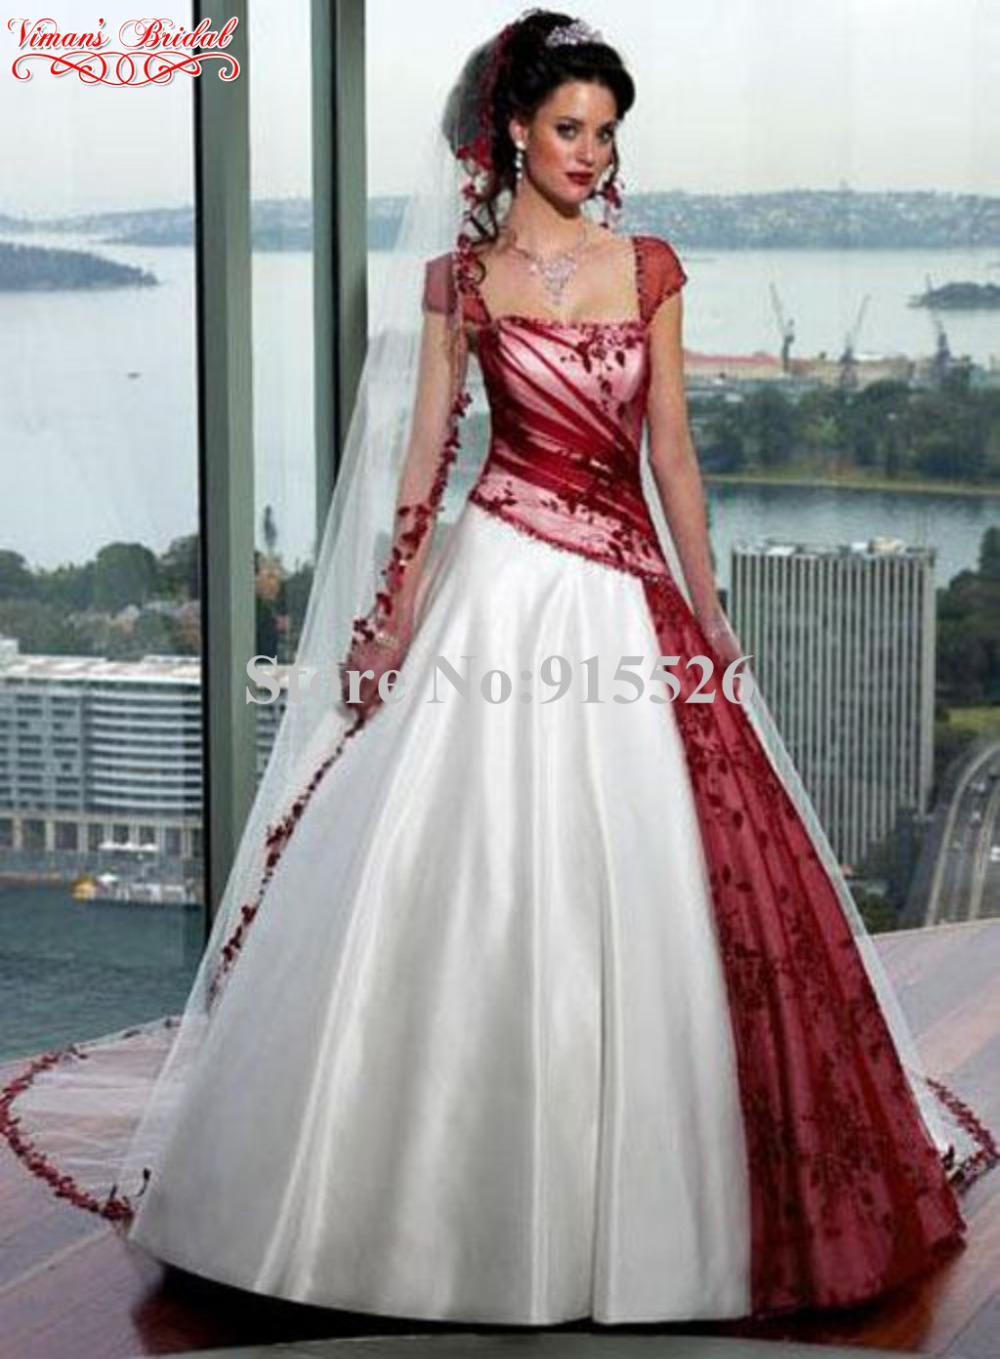 Black dress with touch of red - 2015 White And Red Wedding Gown Appliques Lace Cap Sleeves Lace Up Floor Length Ball